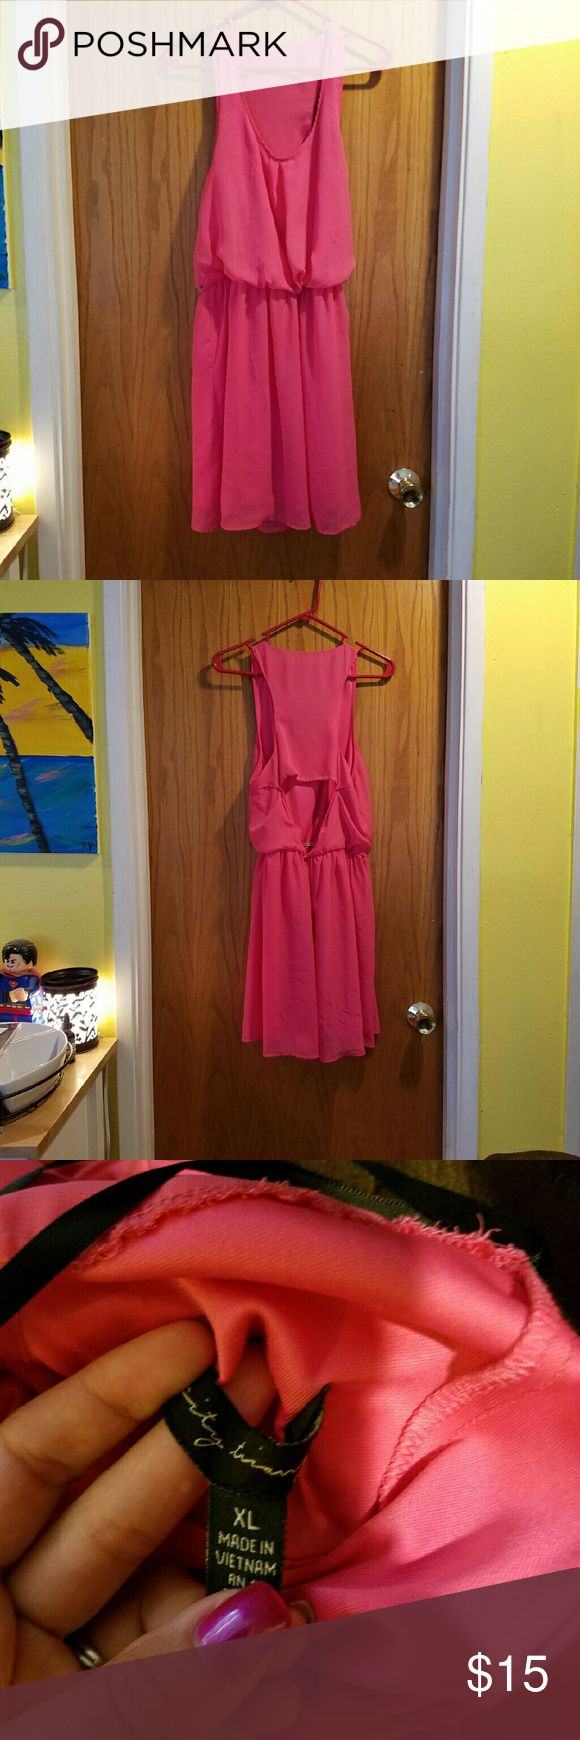 Hot Pink Sundress Great condition, worn only one time Dresses Mini